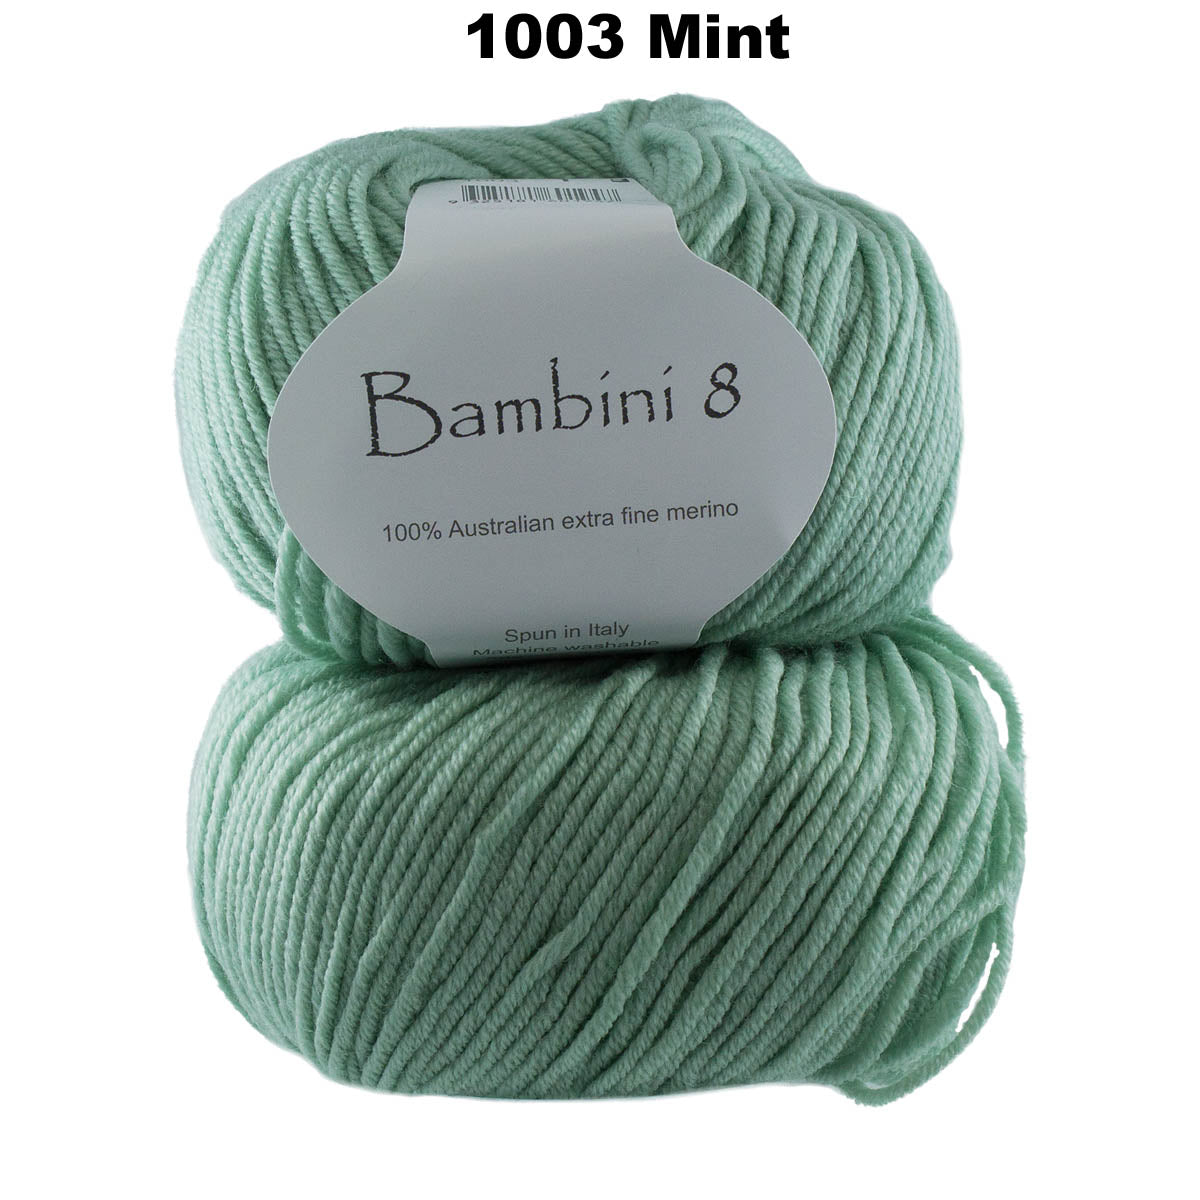 BAMBINI 8 - 8ply/DK/Lt Worsted 100% Australian Merino 50g/125m CHOOSE COLOUR